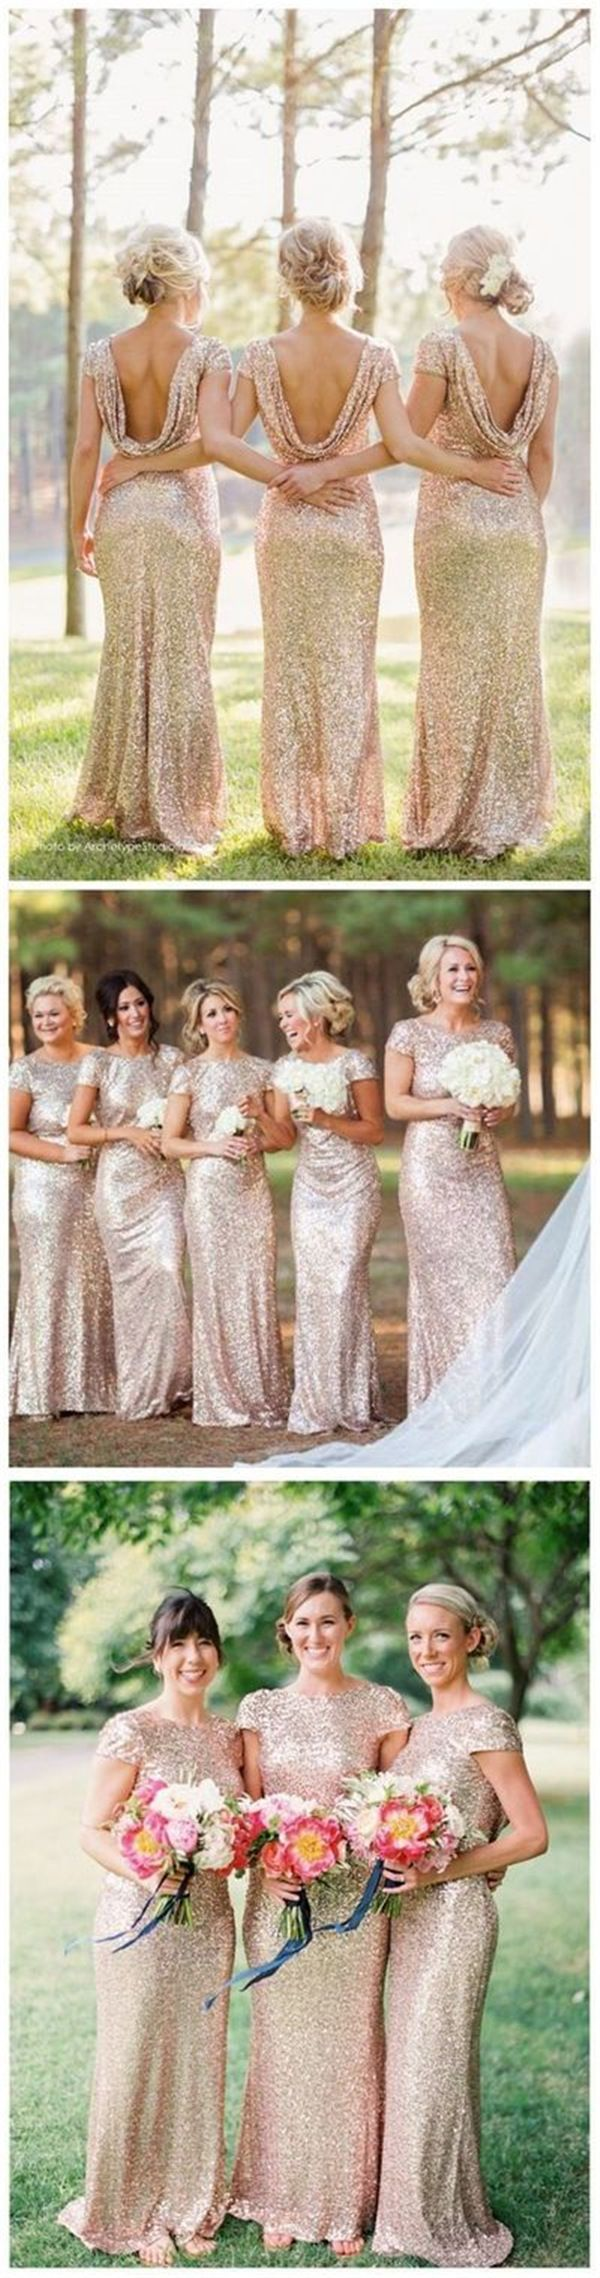 The 25 best gold bridesmaid dresses ideas on pinterest rose the 25 best gold bridesmaid dresses ideas on pinterest rose gold bridesmaid dresses wedding bridesmaid dresses and bling bridesmaid dress ombrellifo Images